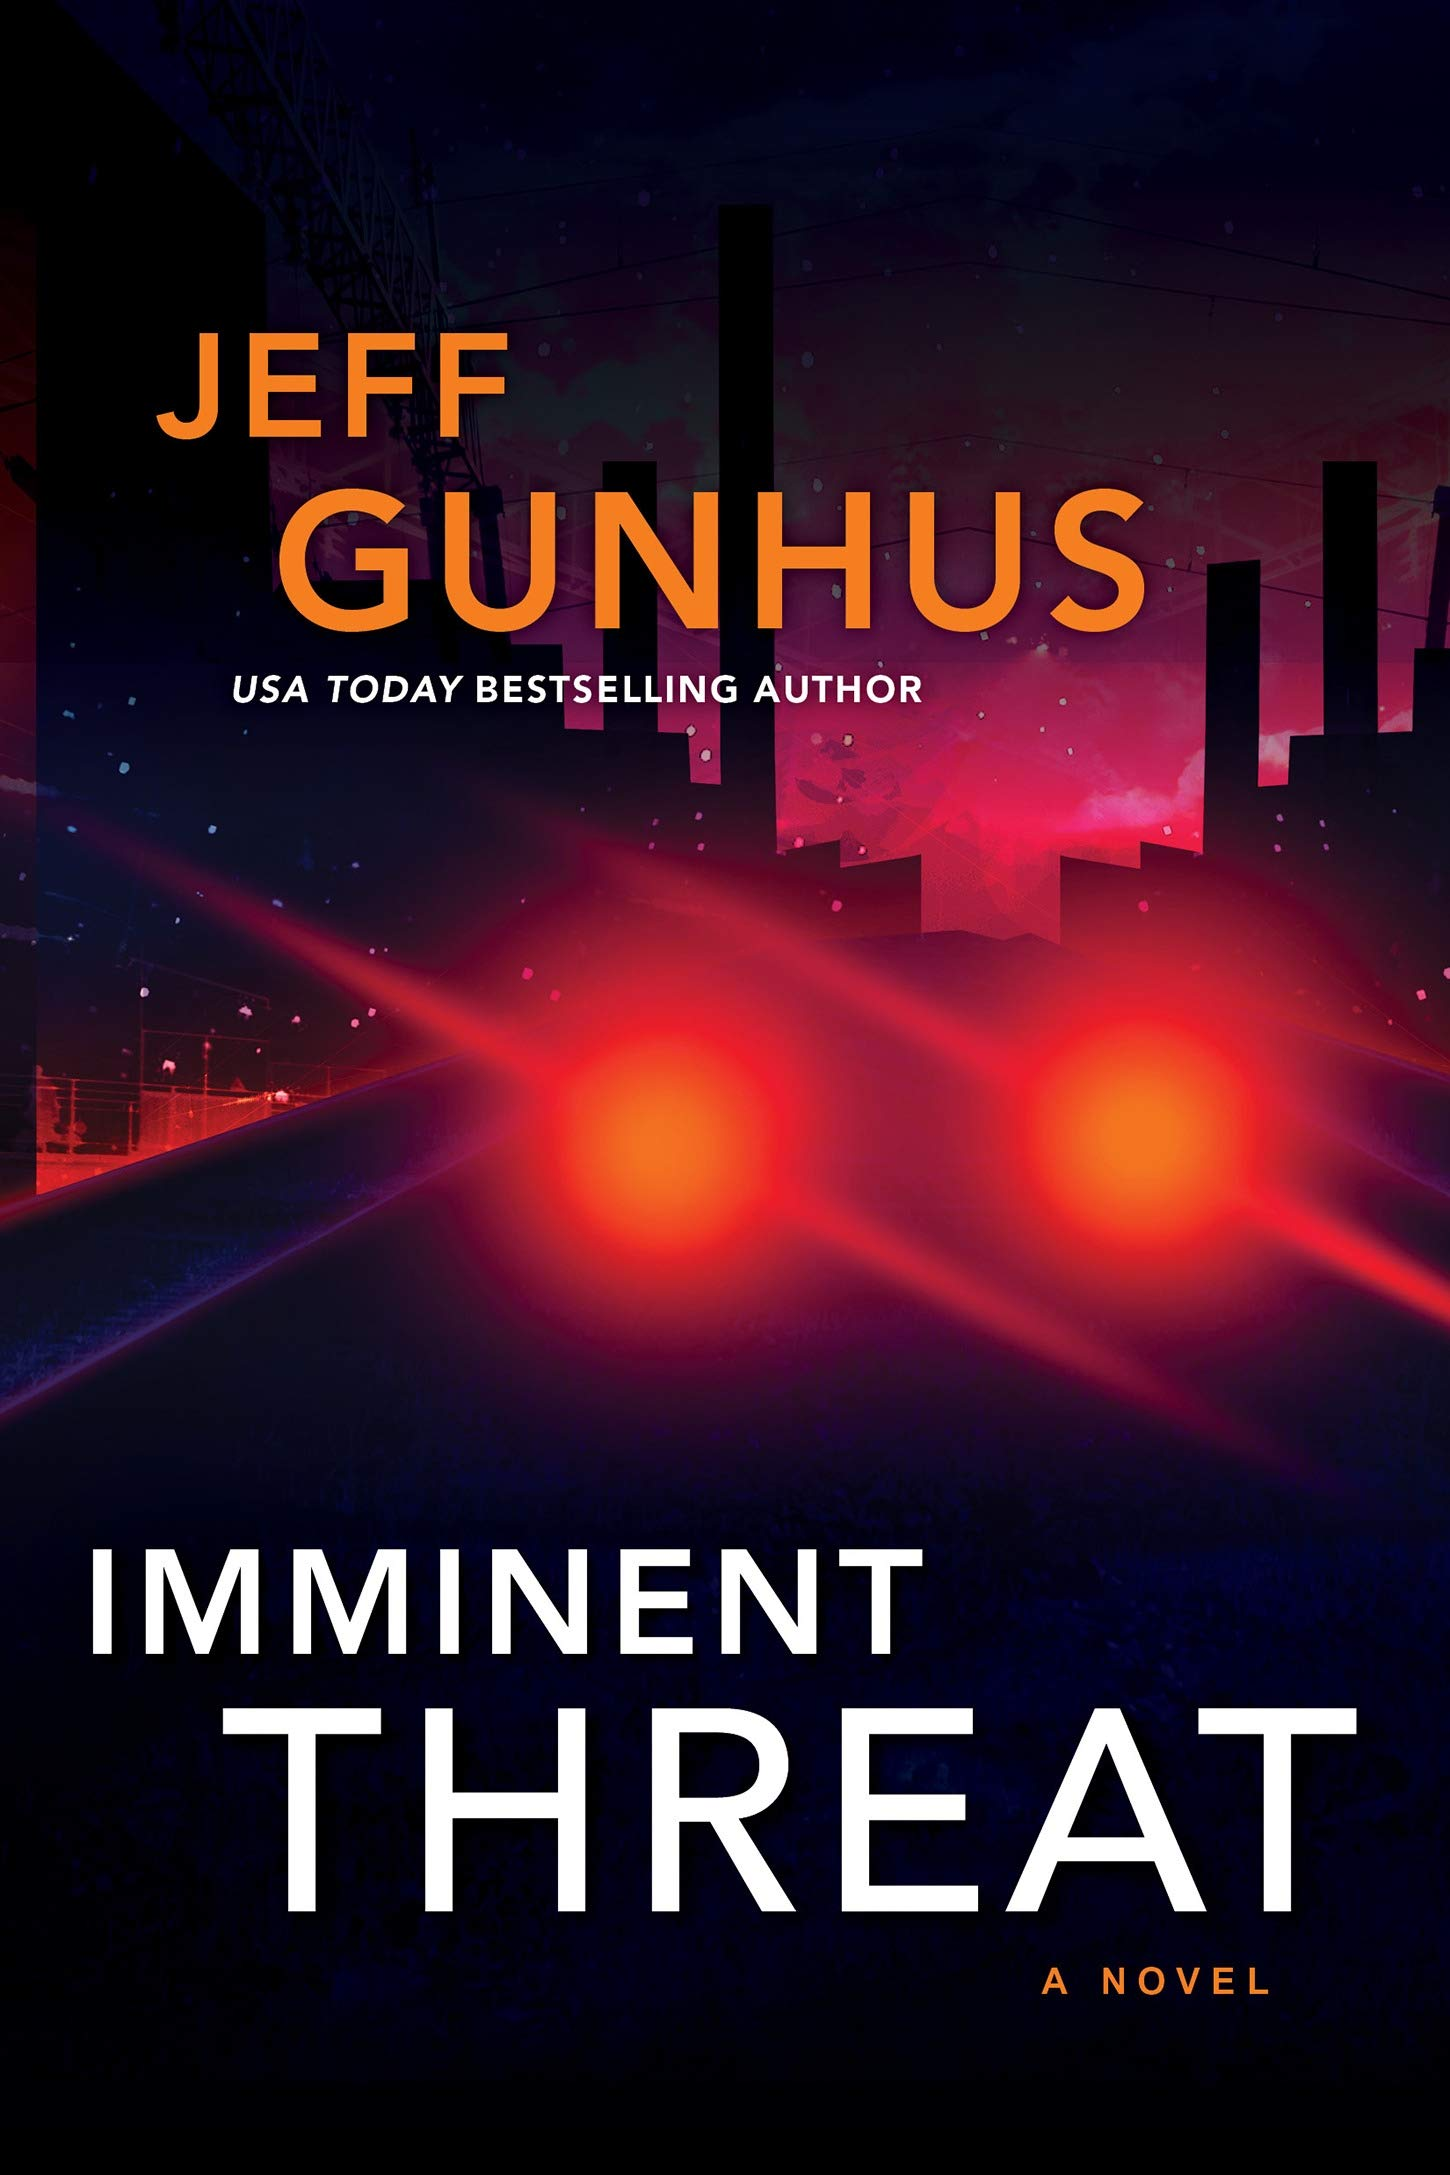 Imminent Threat by Jeff Gunhus